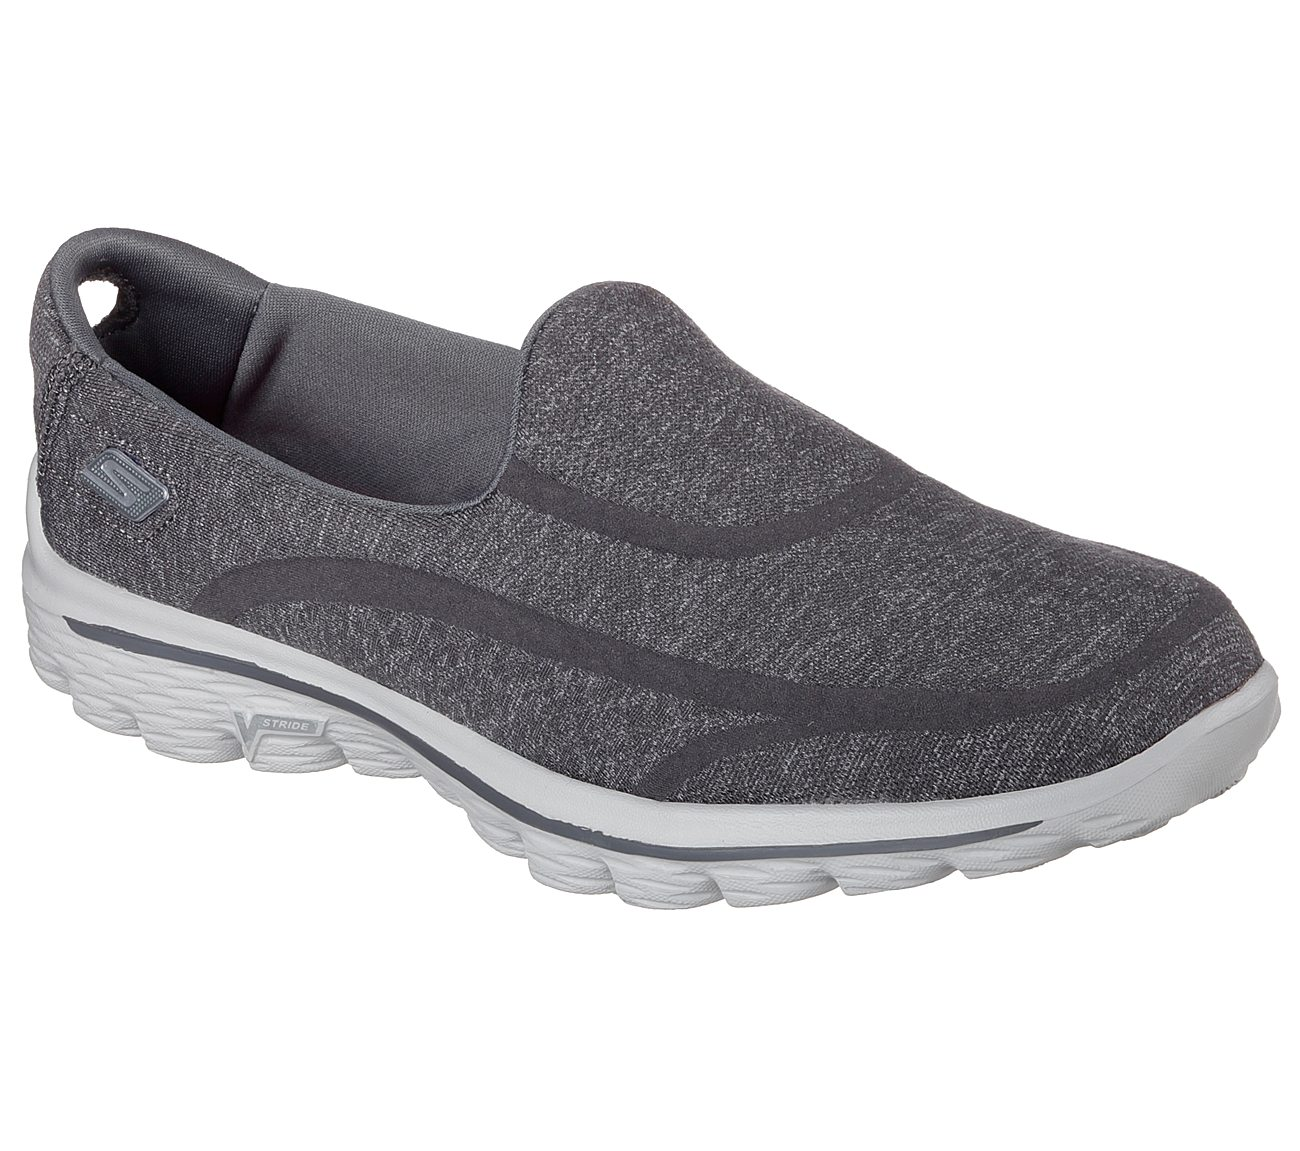 22994c0dd006 Buy SKECHERS Skechers GOwalk 2 - Super Sock Skechers Performance ...